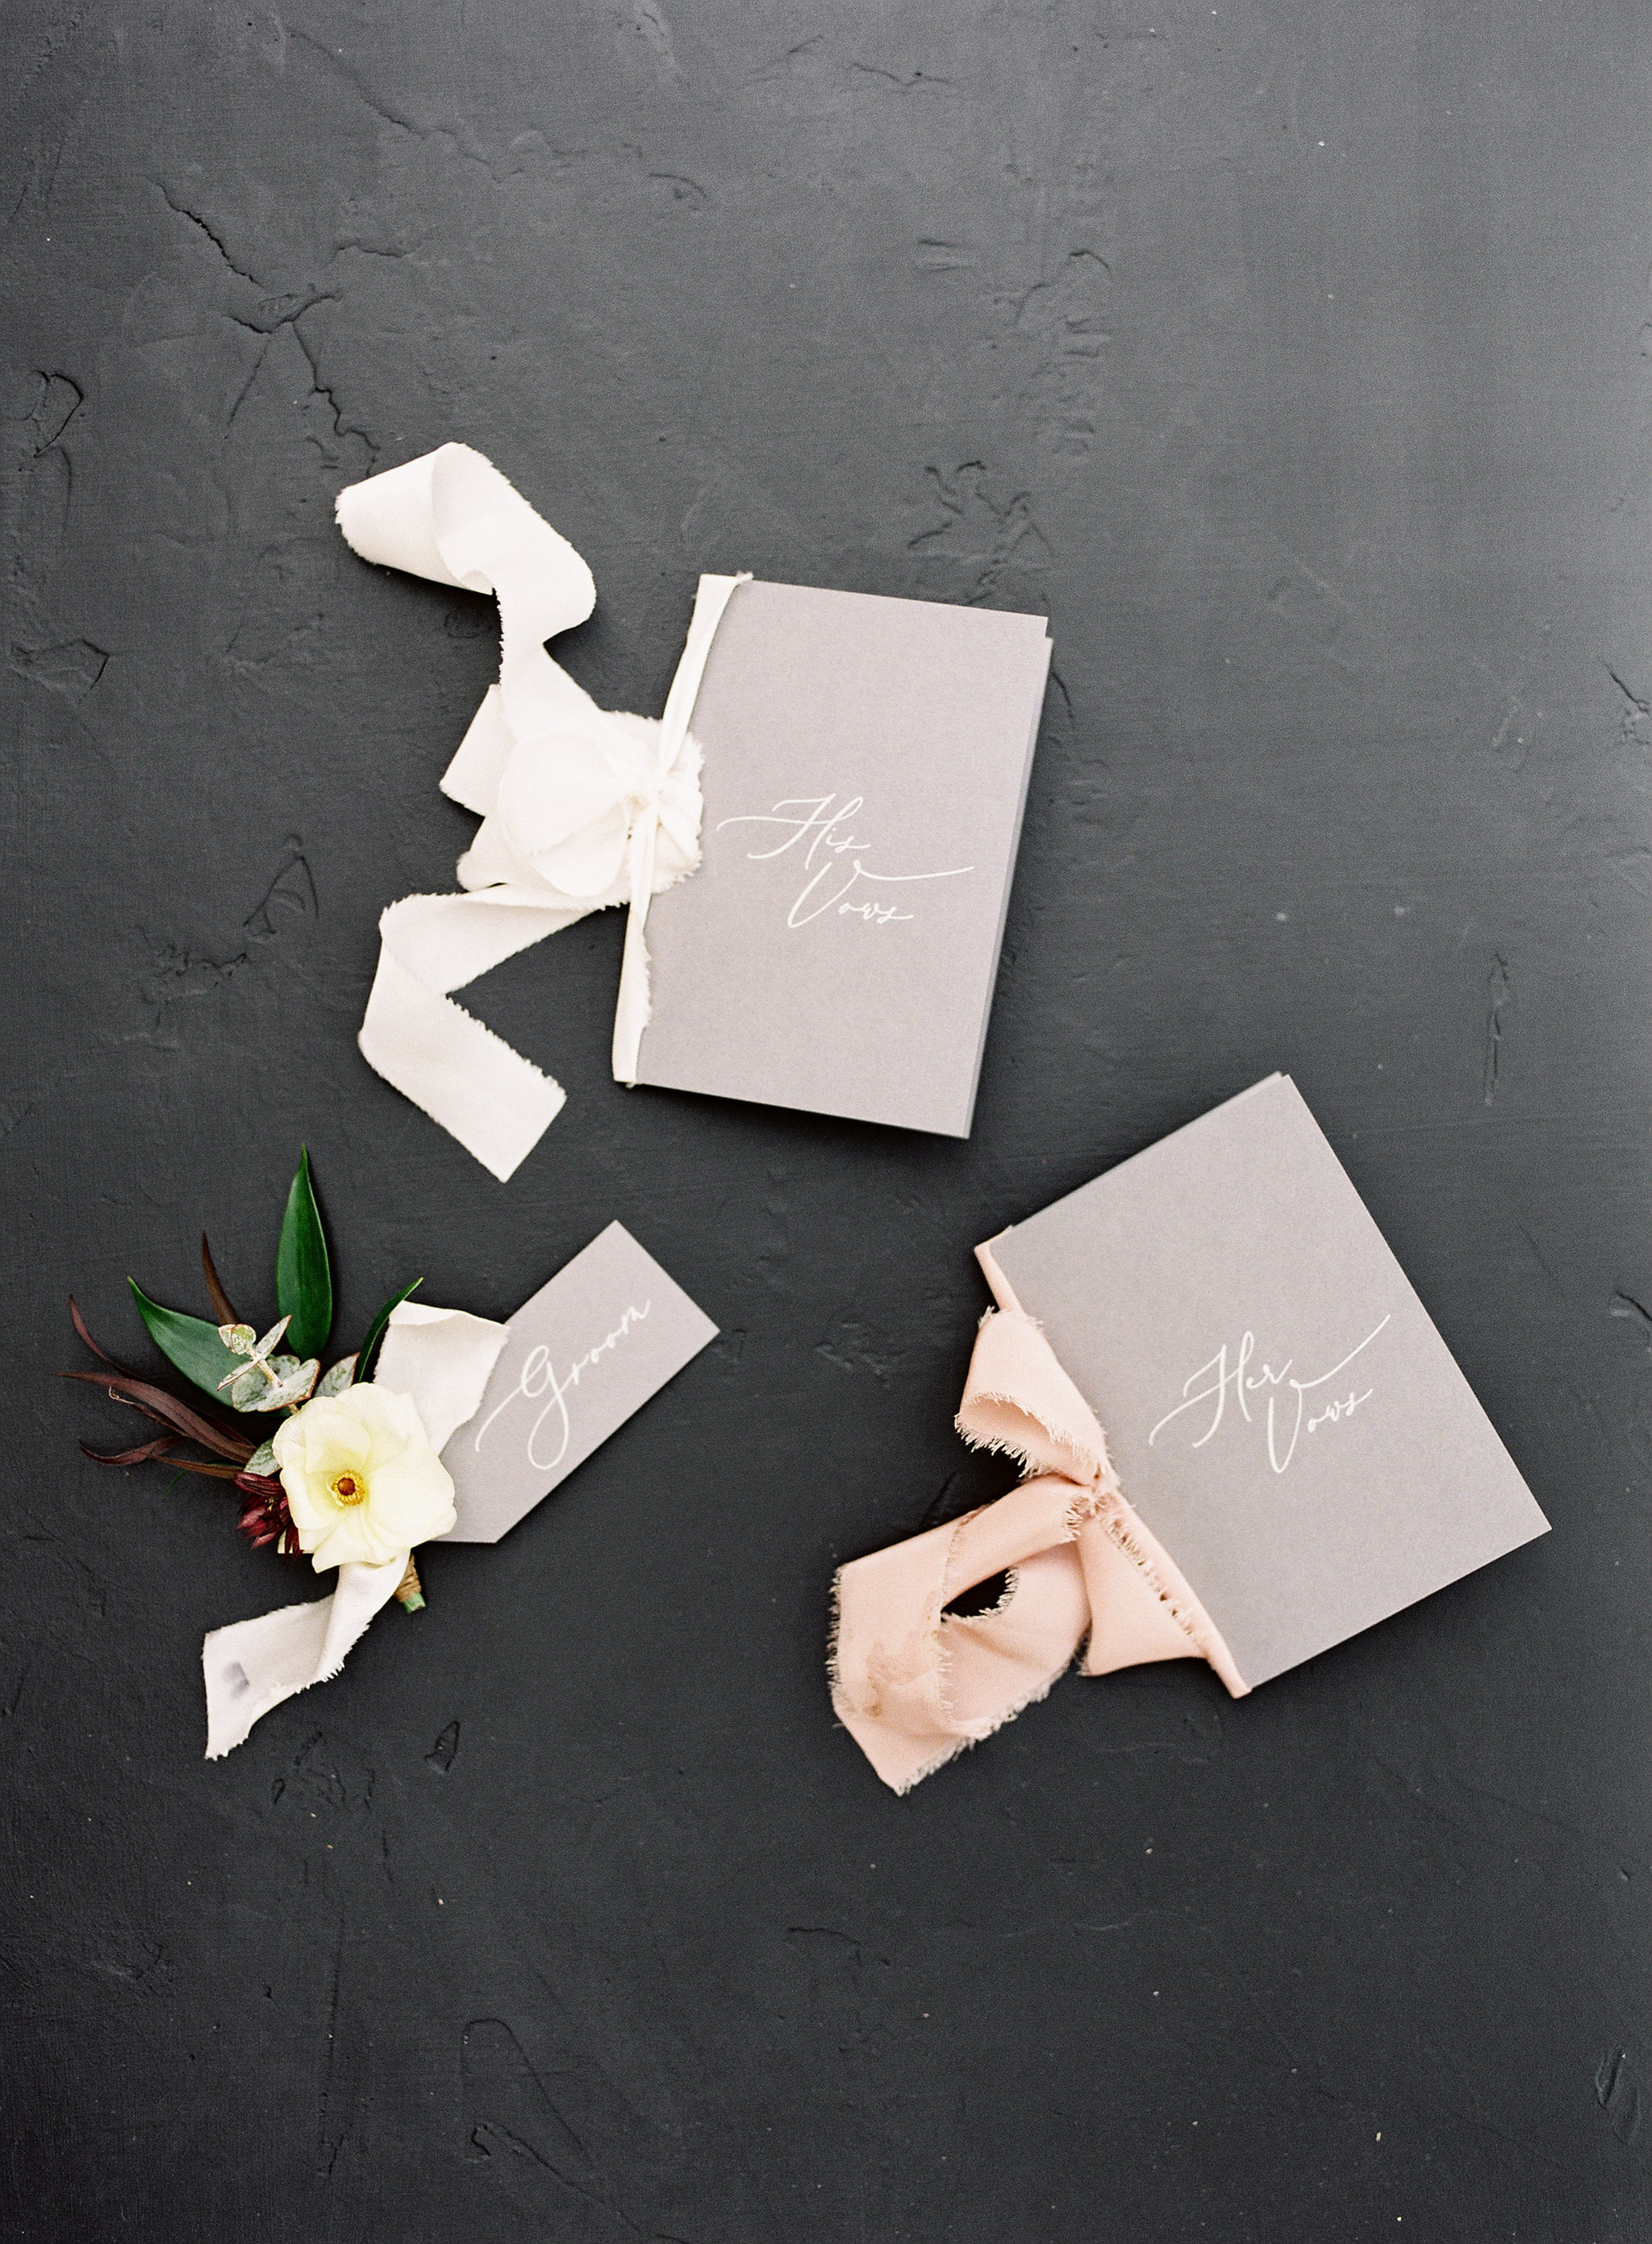 Custom vow booklets by Viri Lovley Designs make for unique keepsakes after a styled shoot designed by Magnificent Moments Weddings